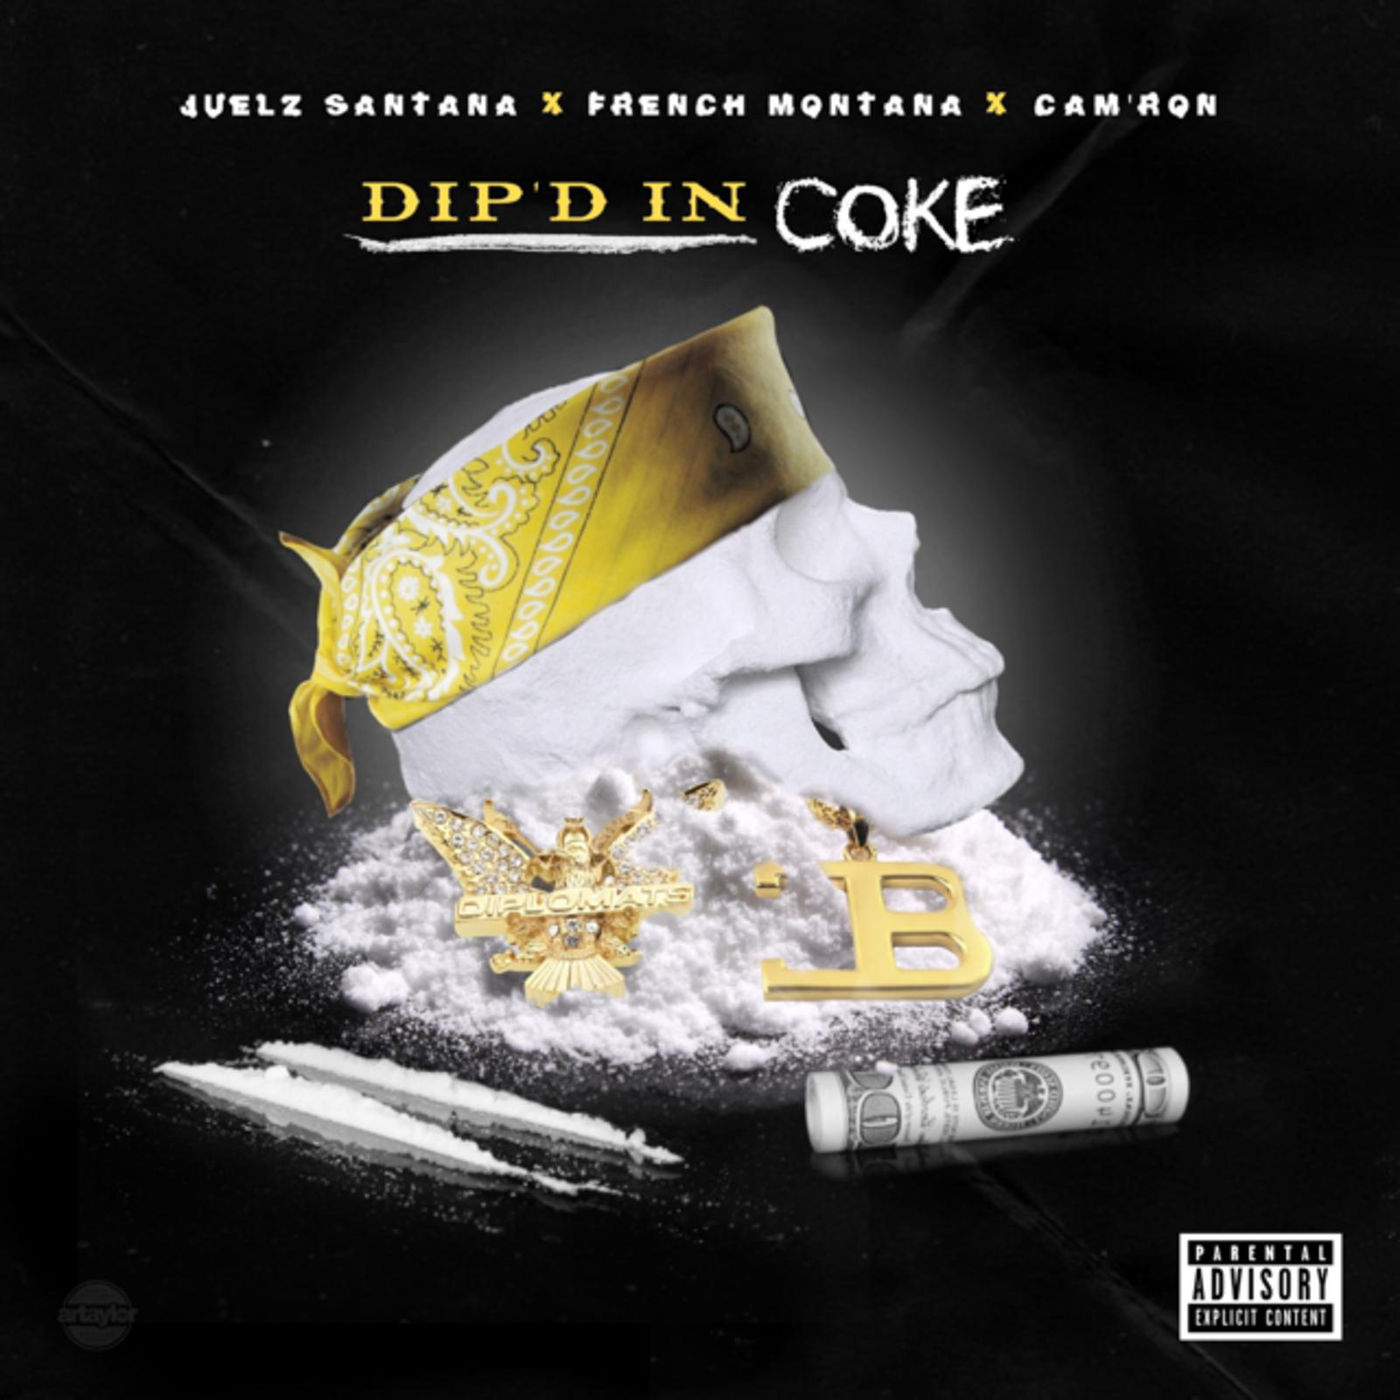 Juelz Santana - Dipped in Coke (feat. Cam'ron & French Montana) - Single Cover